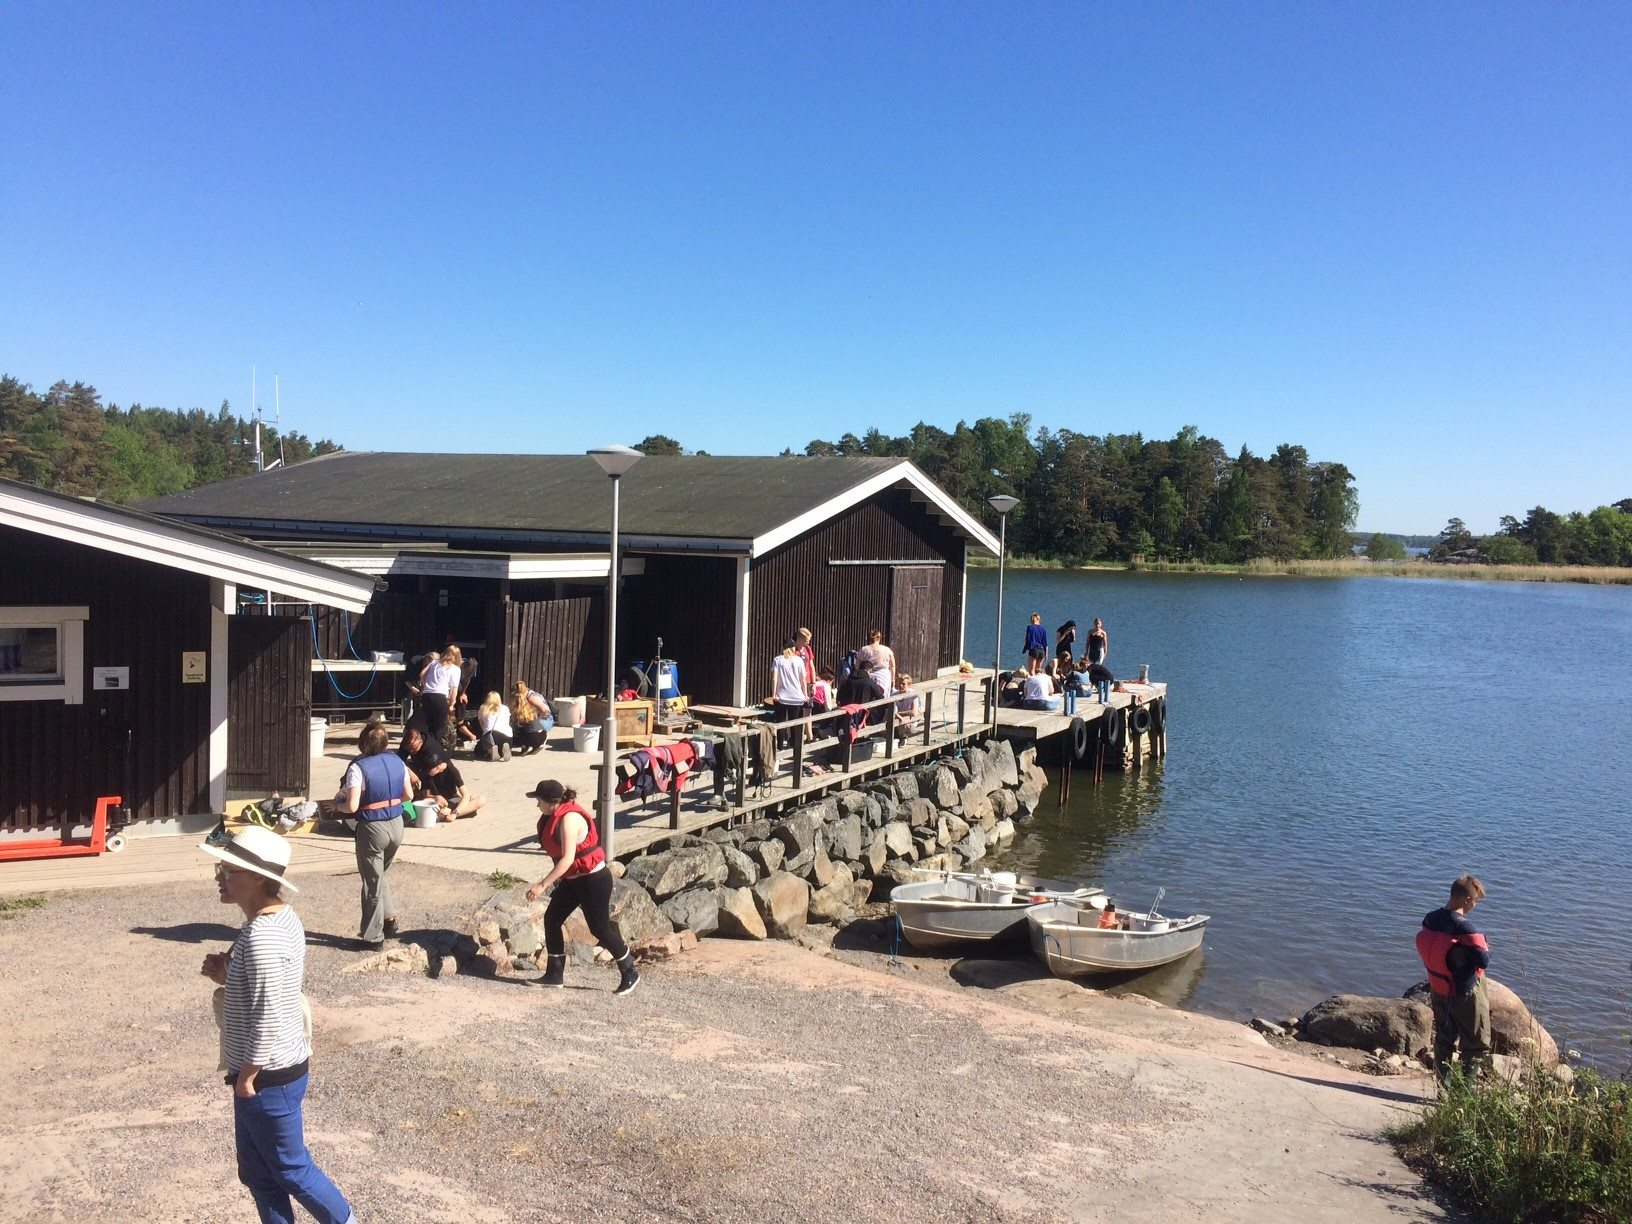 TZS boat house and pier full of people.